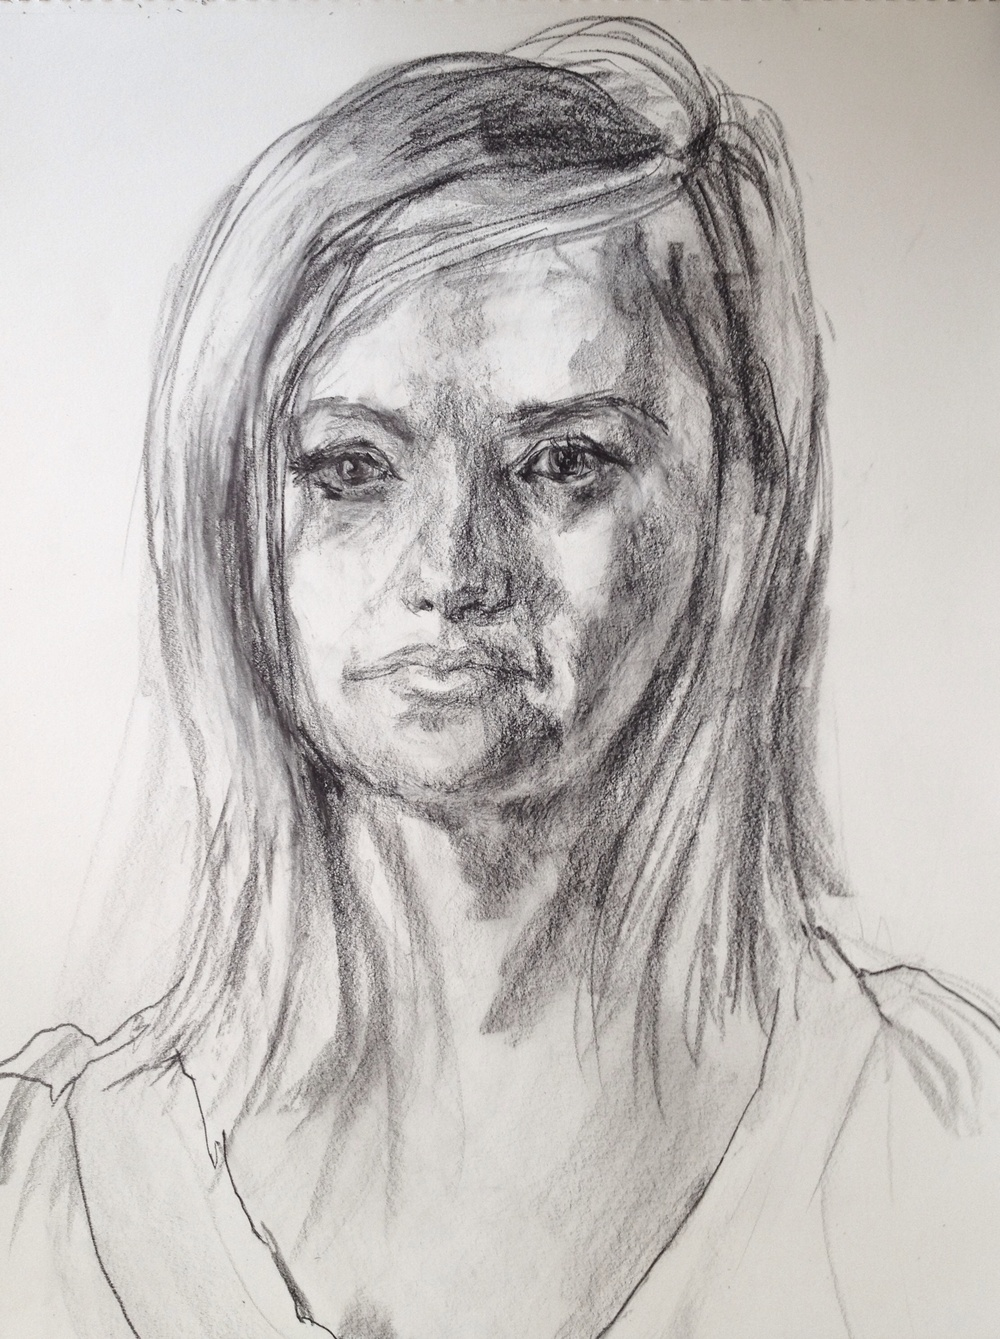 Andrea, 30-minute live drawing, 18 x 24